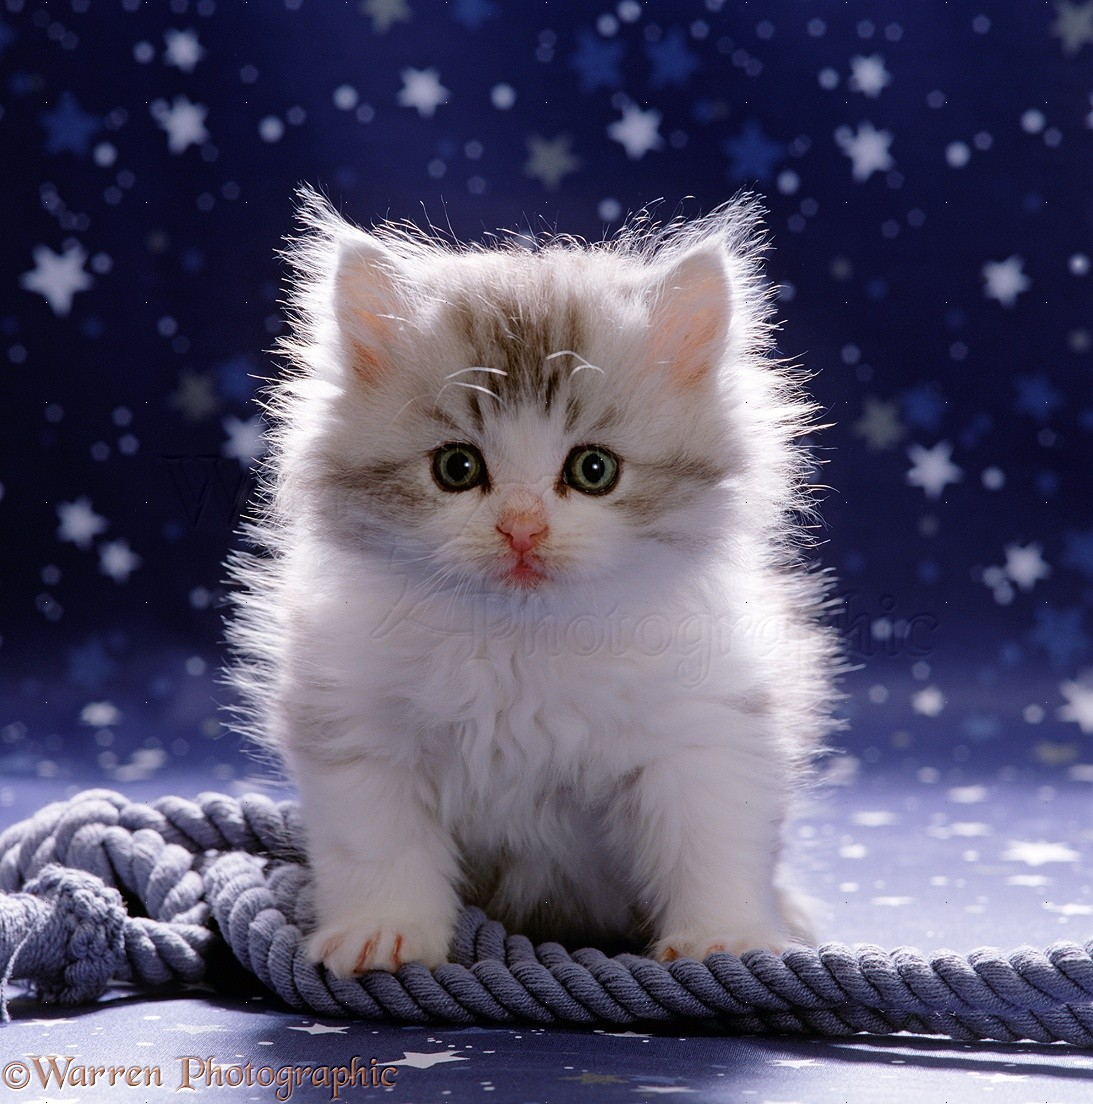 Cute fluffy silver and white kitten photo WP